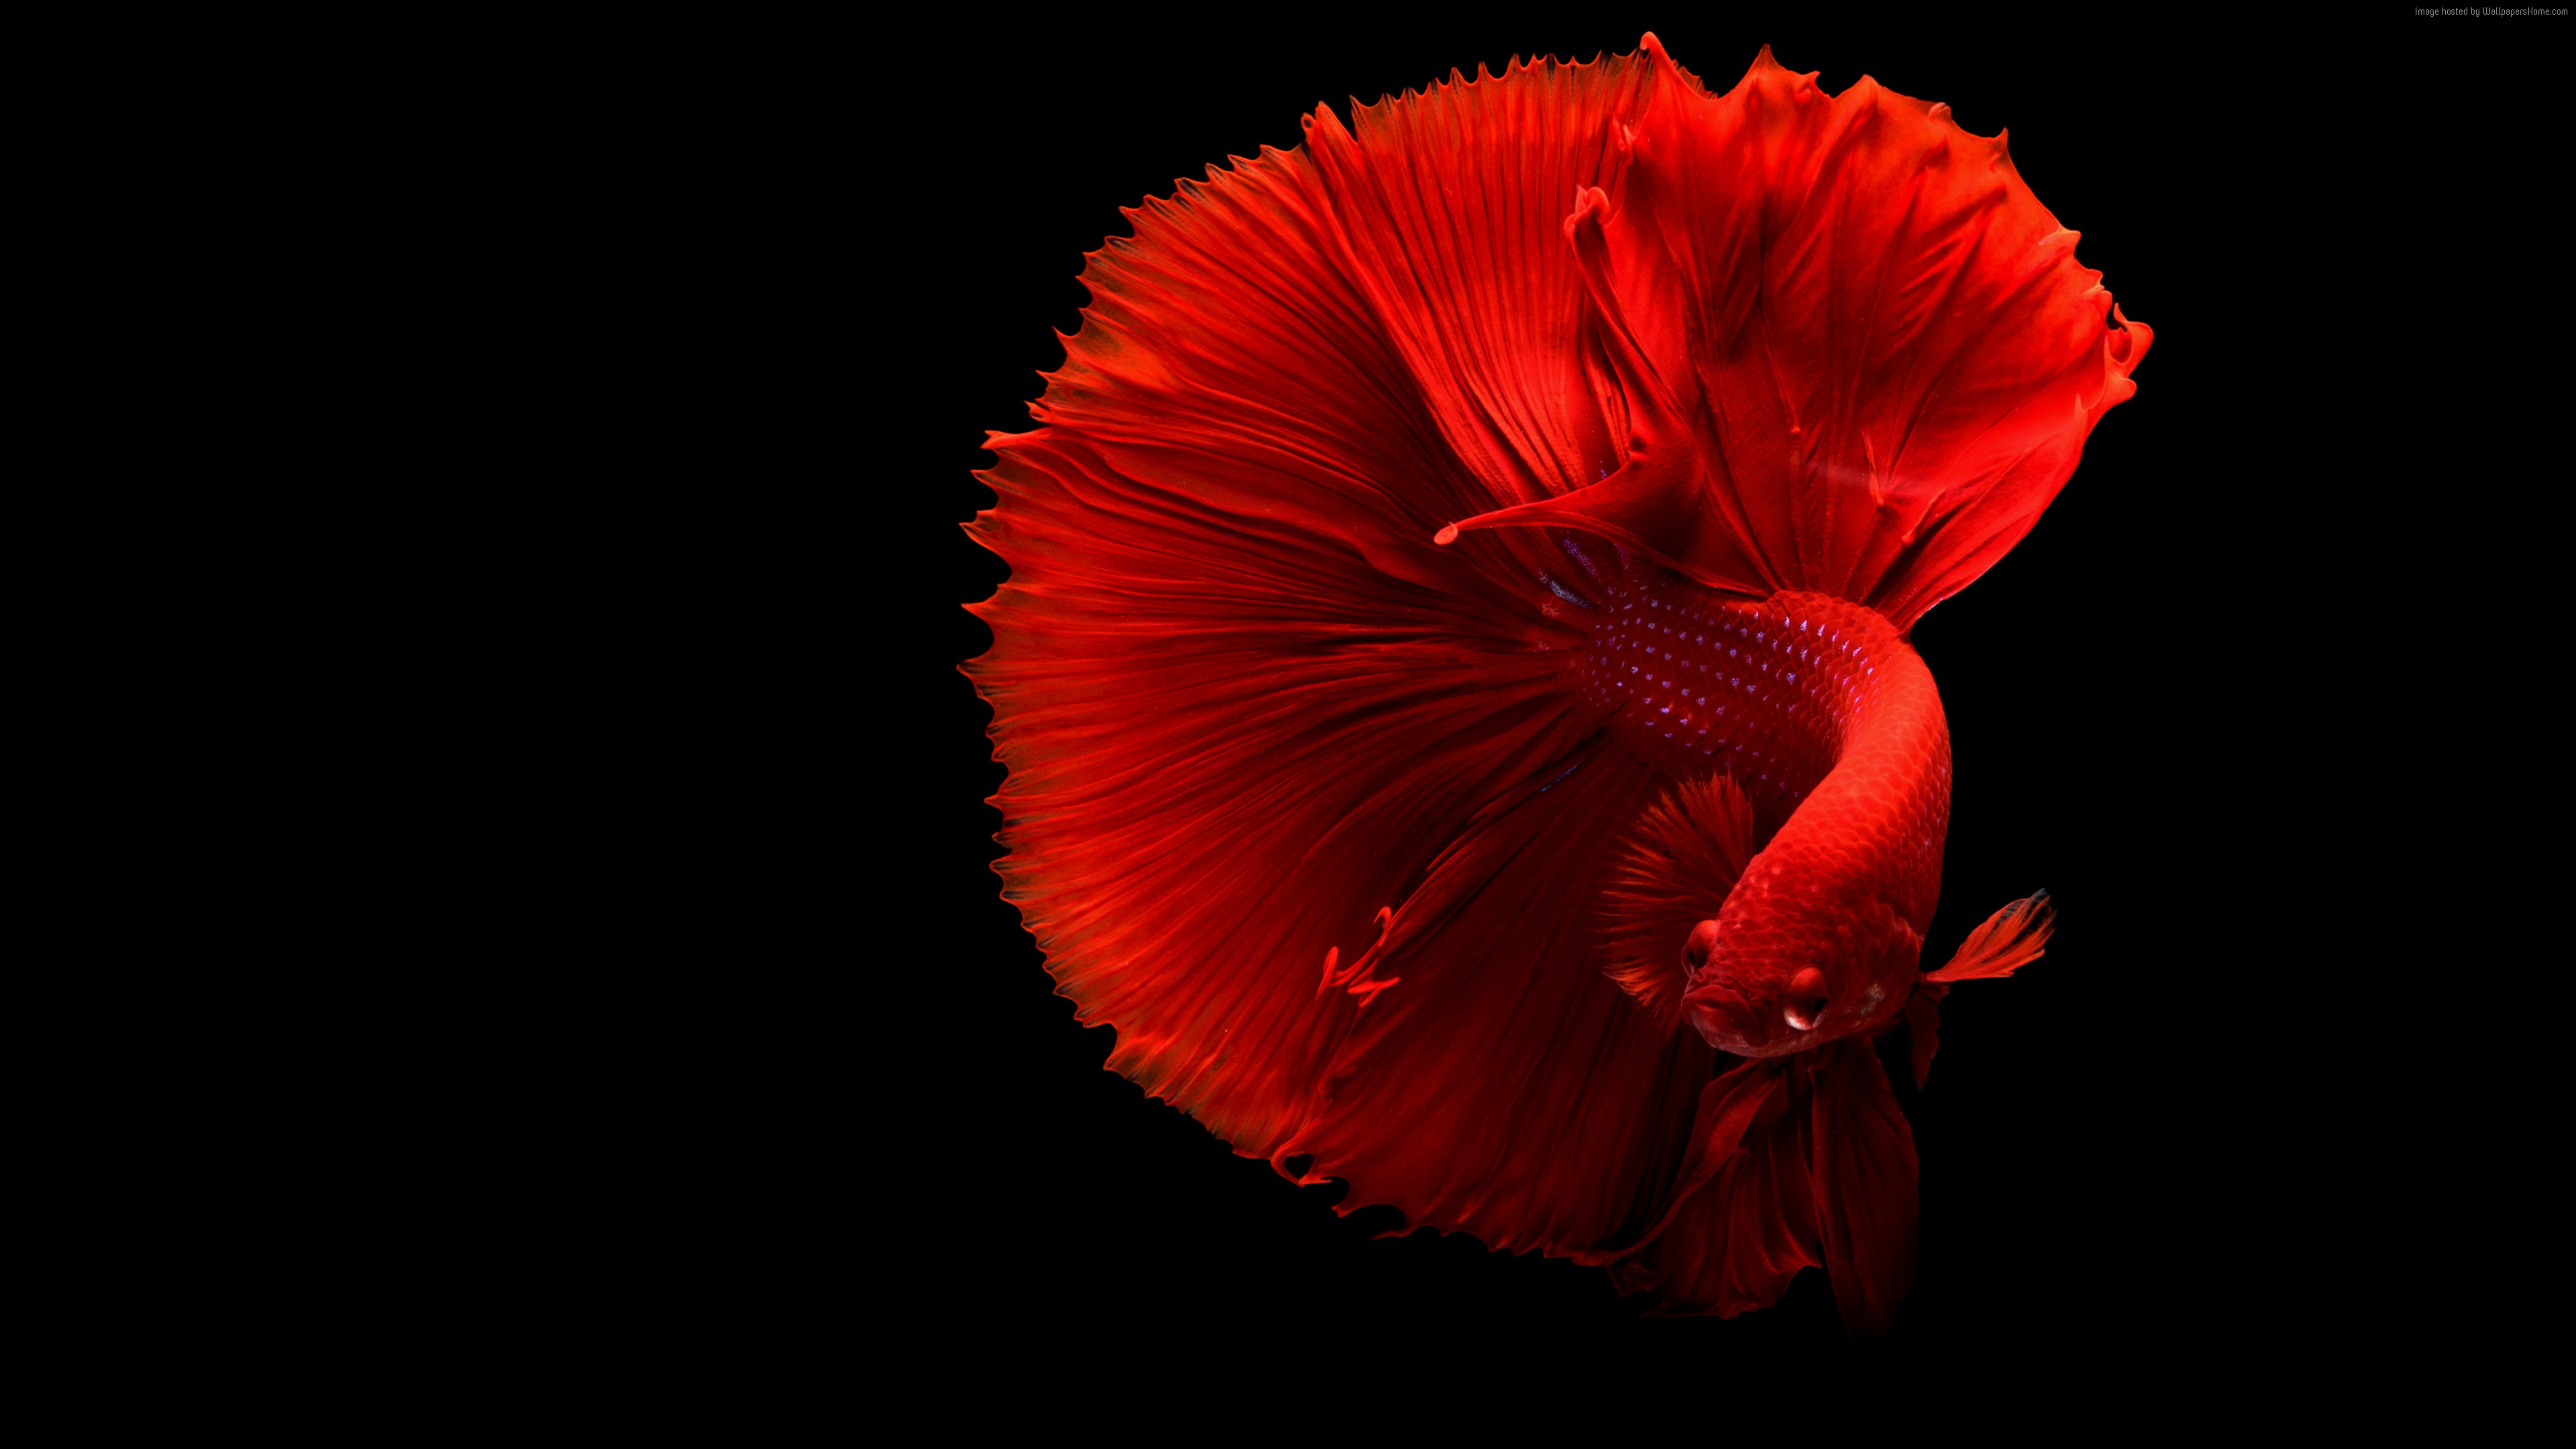 Wallpaper fish, 4k, Animals